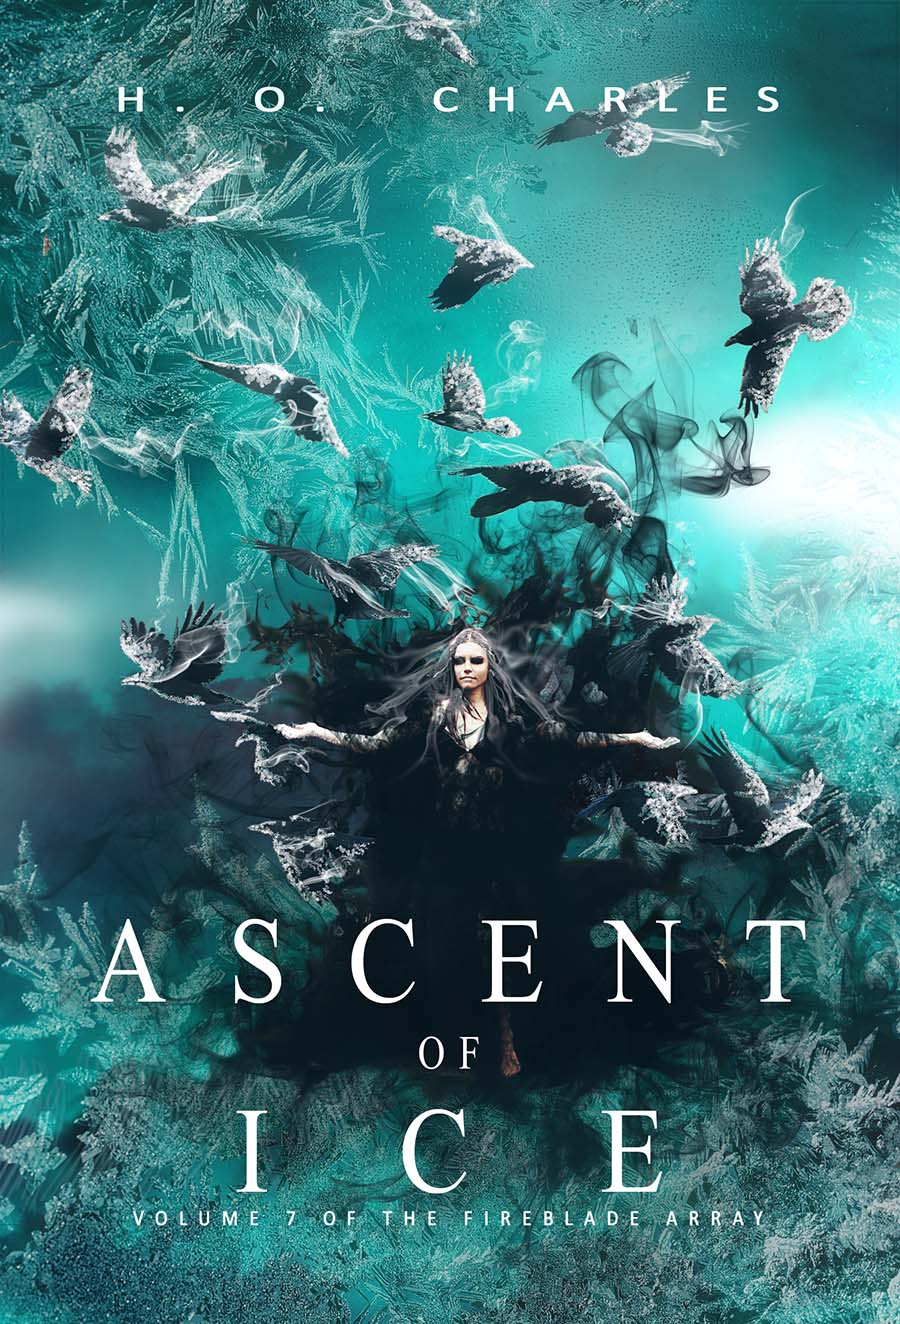 Ascent of Ice